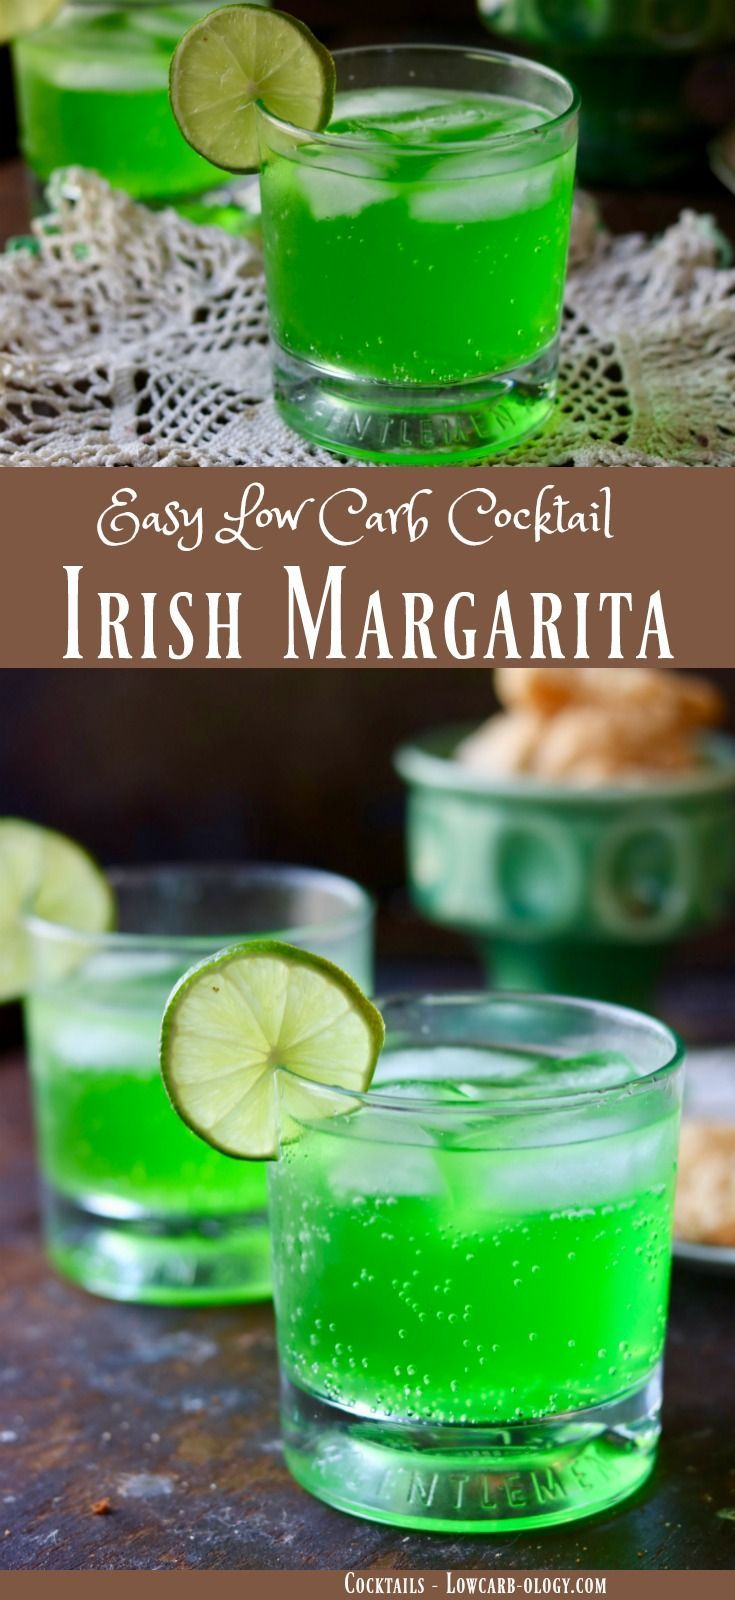 Easy, low carb margarita recipe has 0 carbs. It's the perfect green cocktail for St Patrick's day or anytime you want a refreshing tequila based drink. From Lowcarb-ology.com via @Marye at Restless Chipotle